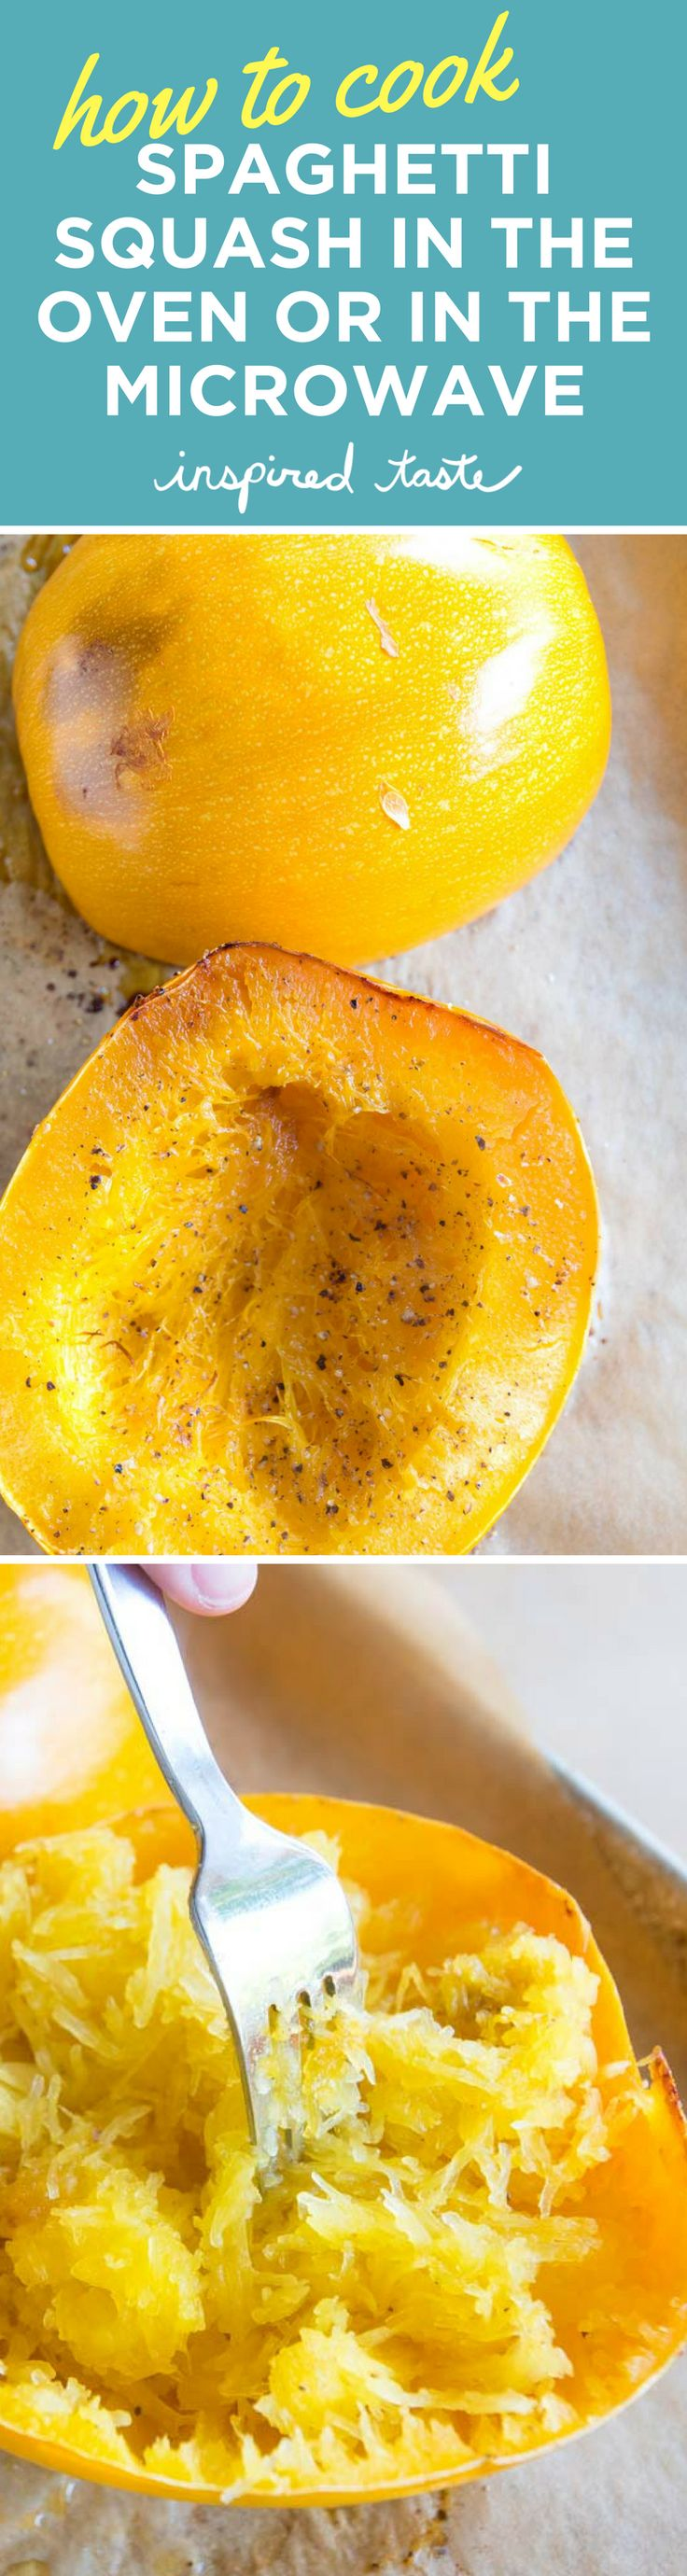 Learn how to cook spaghetti squash perfectly every time. We share how to bake it in the oven or, if you are short on time, how to cook it in the microwave.